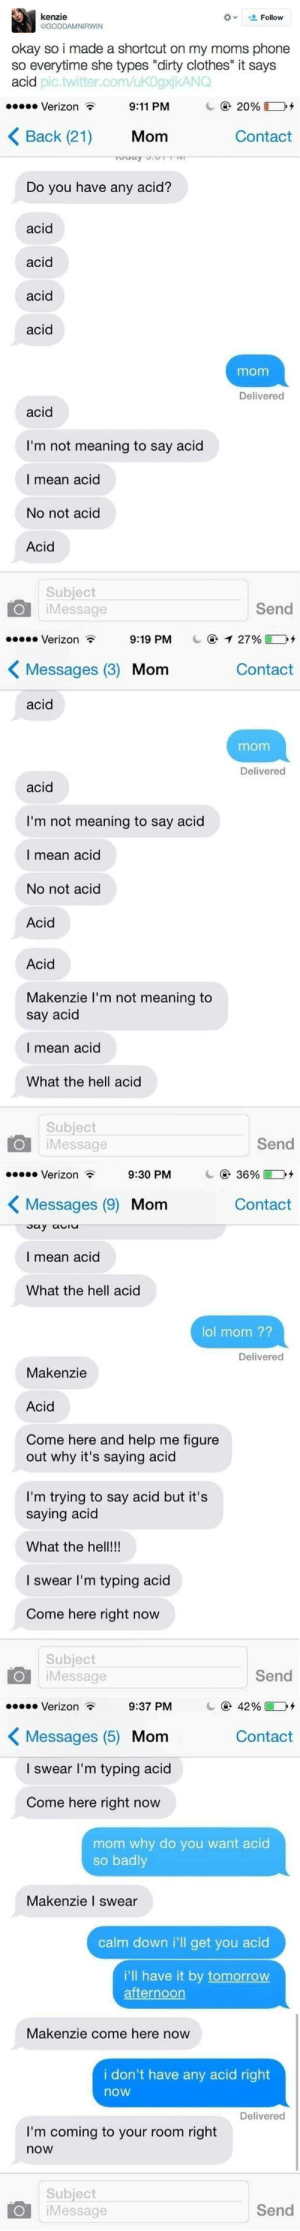 """Come Here Now: okay so i made a shortcut on my moms phone  so everytime she types """"dirty clothes it says  acid  pic.twitter.com/ukogxjkANG  Verizon  9:11 PM  с @ 2096 D+  Back (21) Mom  Contact  Do you have any acid?  acid  acid  acid  aci  acid  I'm not meaning to say acid  I mean acid  No not acid  Acid  Subject  Send  @イ2796L2+  Contact  Message  Verizon  9:19 PM  Messages (3) Mom  acid  mom  acid  I'm not meaning to say acid  I mean acid  No not acid  Acid  Acid  Makenzie I'm not meaning to  say acid  I mean acid  What the hell acid  Subject  Send  , 36% D+  Contact  Message  Verizon  9:30 PM  Messages (9) Mom  I mean acid  What the hell acid  lol mom ??  Makenzie  Acid  Come here and help me figure  out why it's saying acid  I'm trying to say acid but it's  saying acid  What the hel!!  l swear I'm typing acid  Come here right now  Subject  O iMessage  9:37 PM  Messages (5) Monm  I swear I'm typing acid  Send  42% D+  Contact  Verizon  Come here right novw  mom why do you want acid  so badly  Makenzie I swear  calm down i'll get you acid  i'll have it by tomorrow  Makenzie come here now  i don't have any acid right  now  I'm coming to your room right  now  Subject  iMessage  Send"""